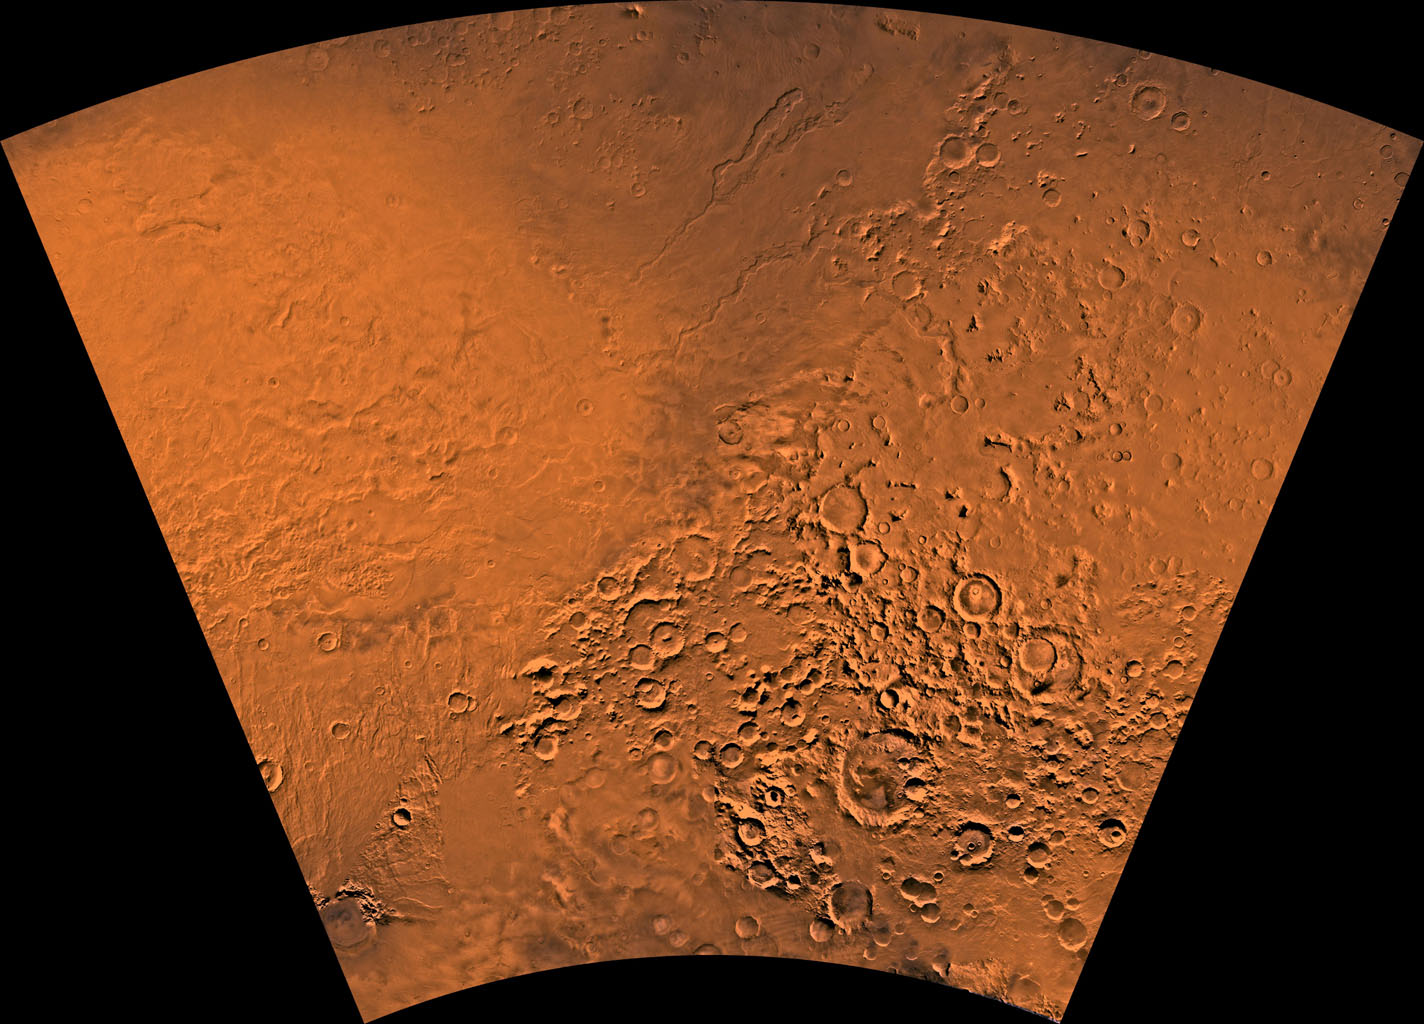 Mars digital-image mosaic merged with color of the MC-28 quadrangle, Hellas region of Mars. This image is from NASA's Viking Orbiter 1.